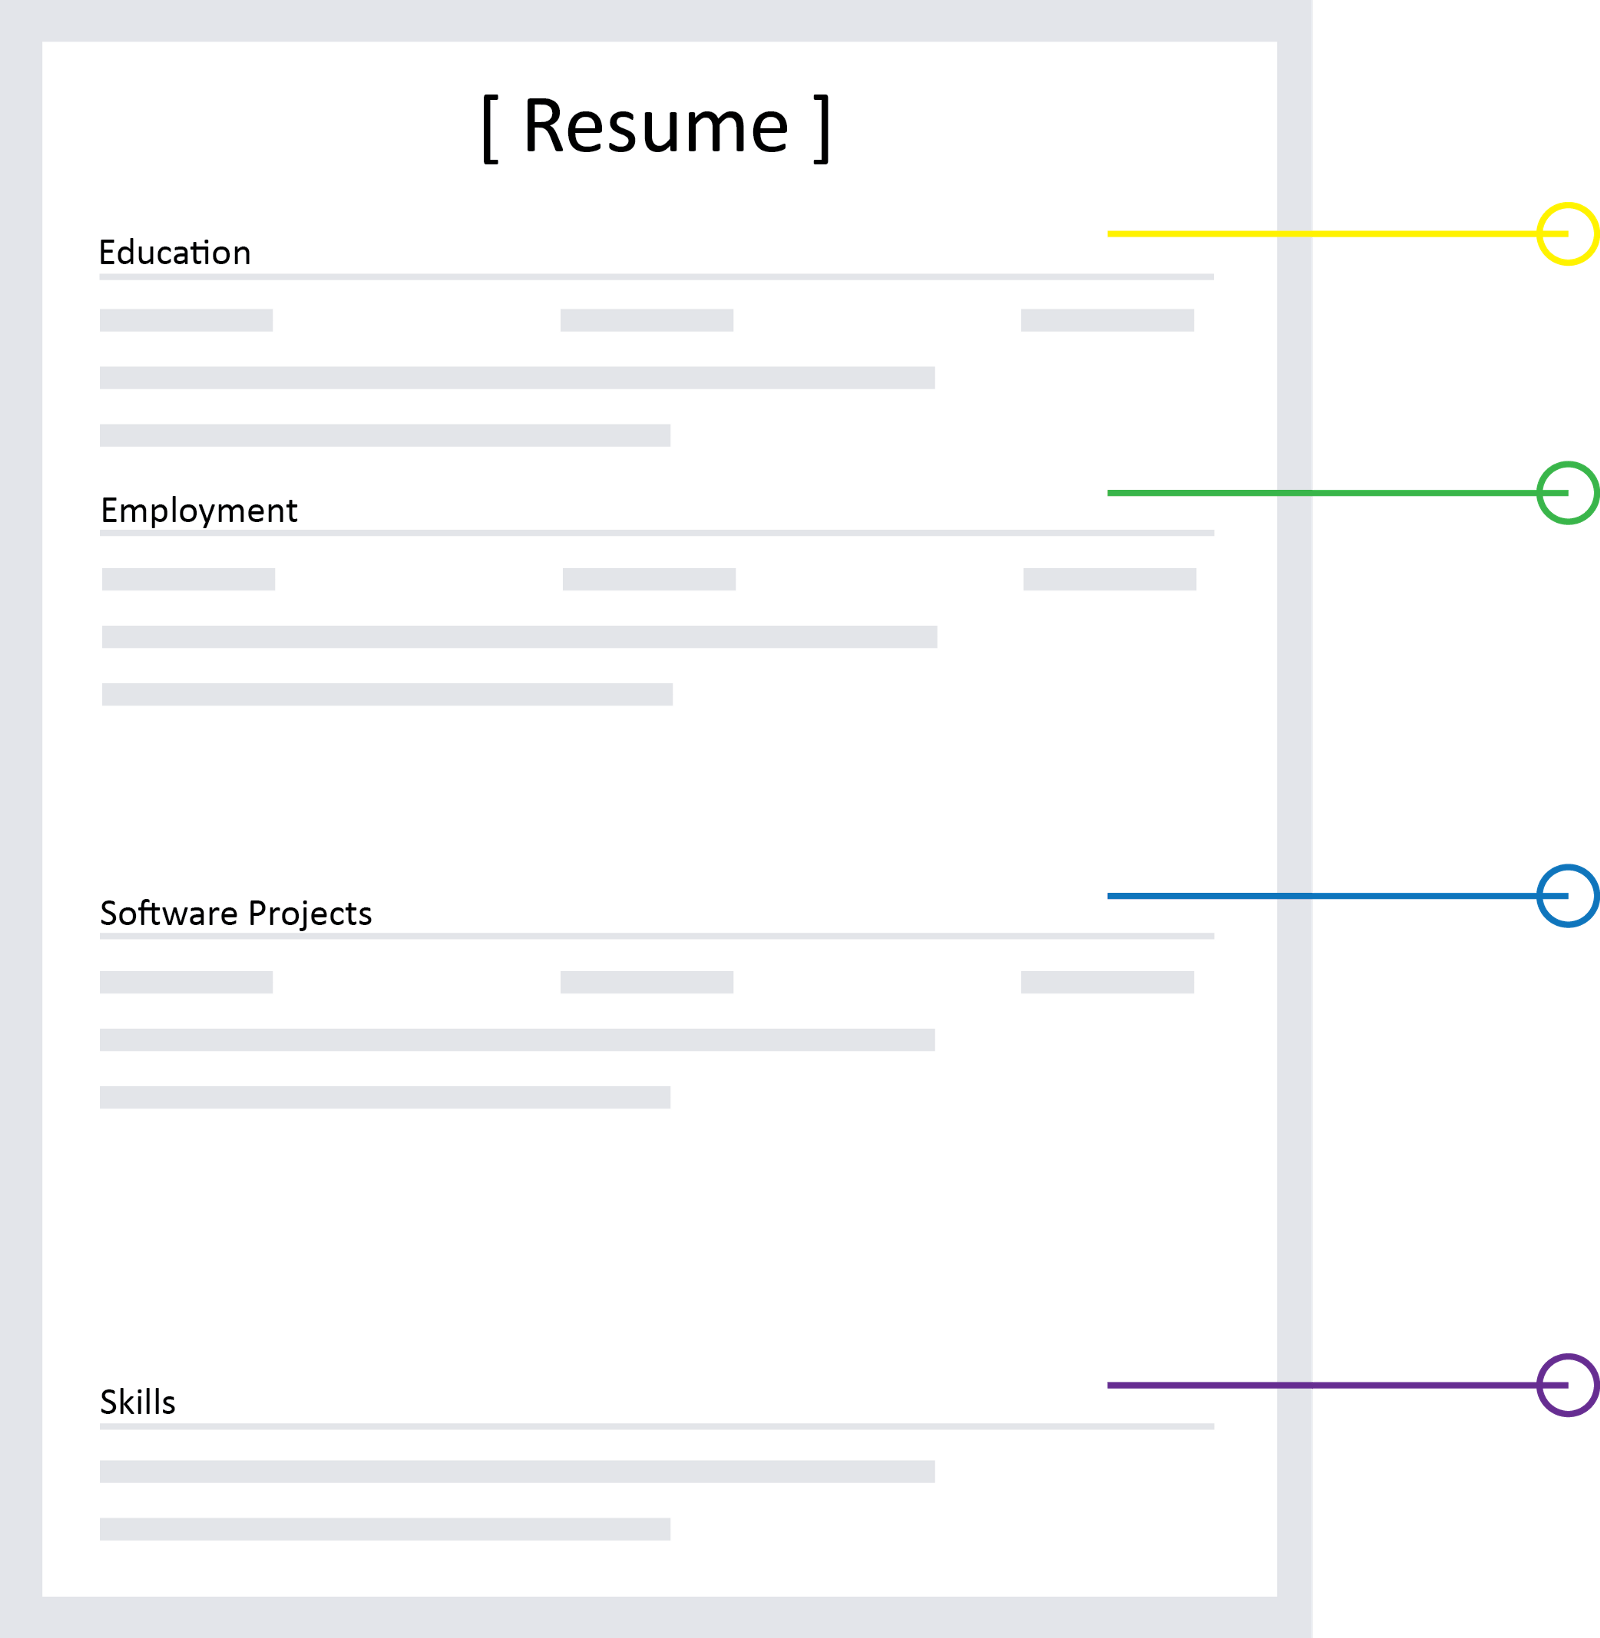 How To Write A Resumer How To Write A Killer Software Engineering Résumé Freecodecamp Org